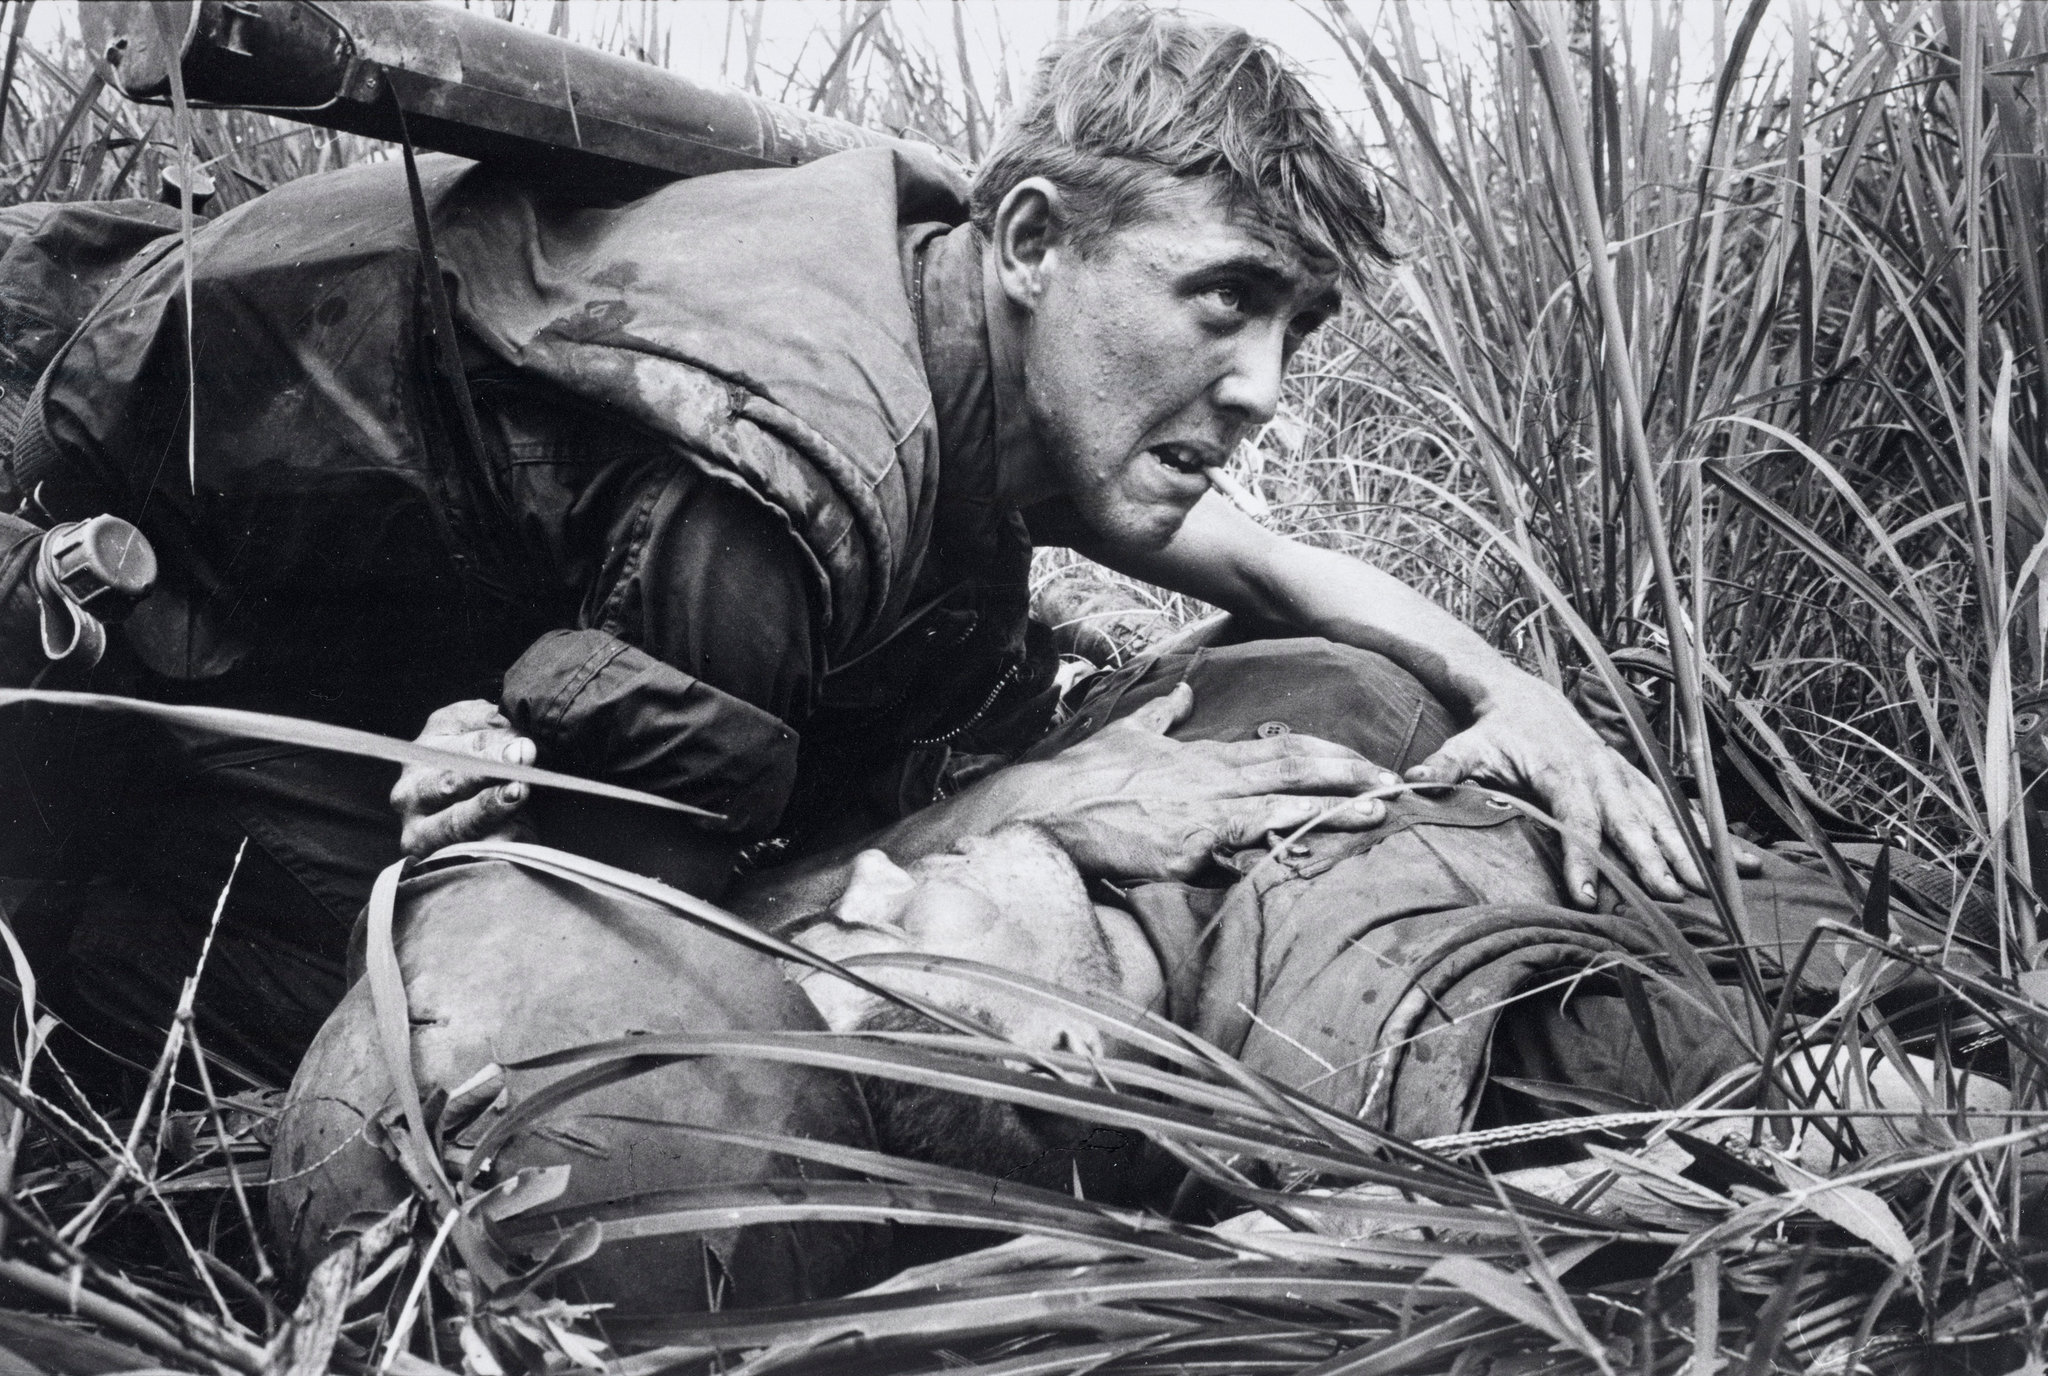 Leroy Lens Vietnam War Photo By Catherine Leroy A Marine Held A Wound Flickr